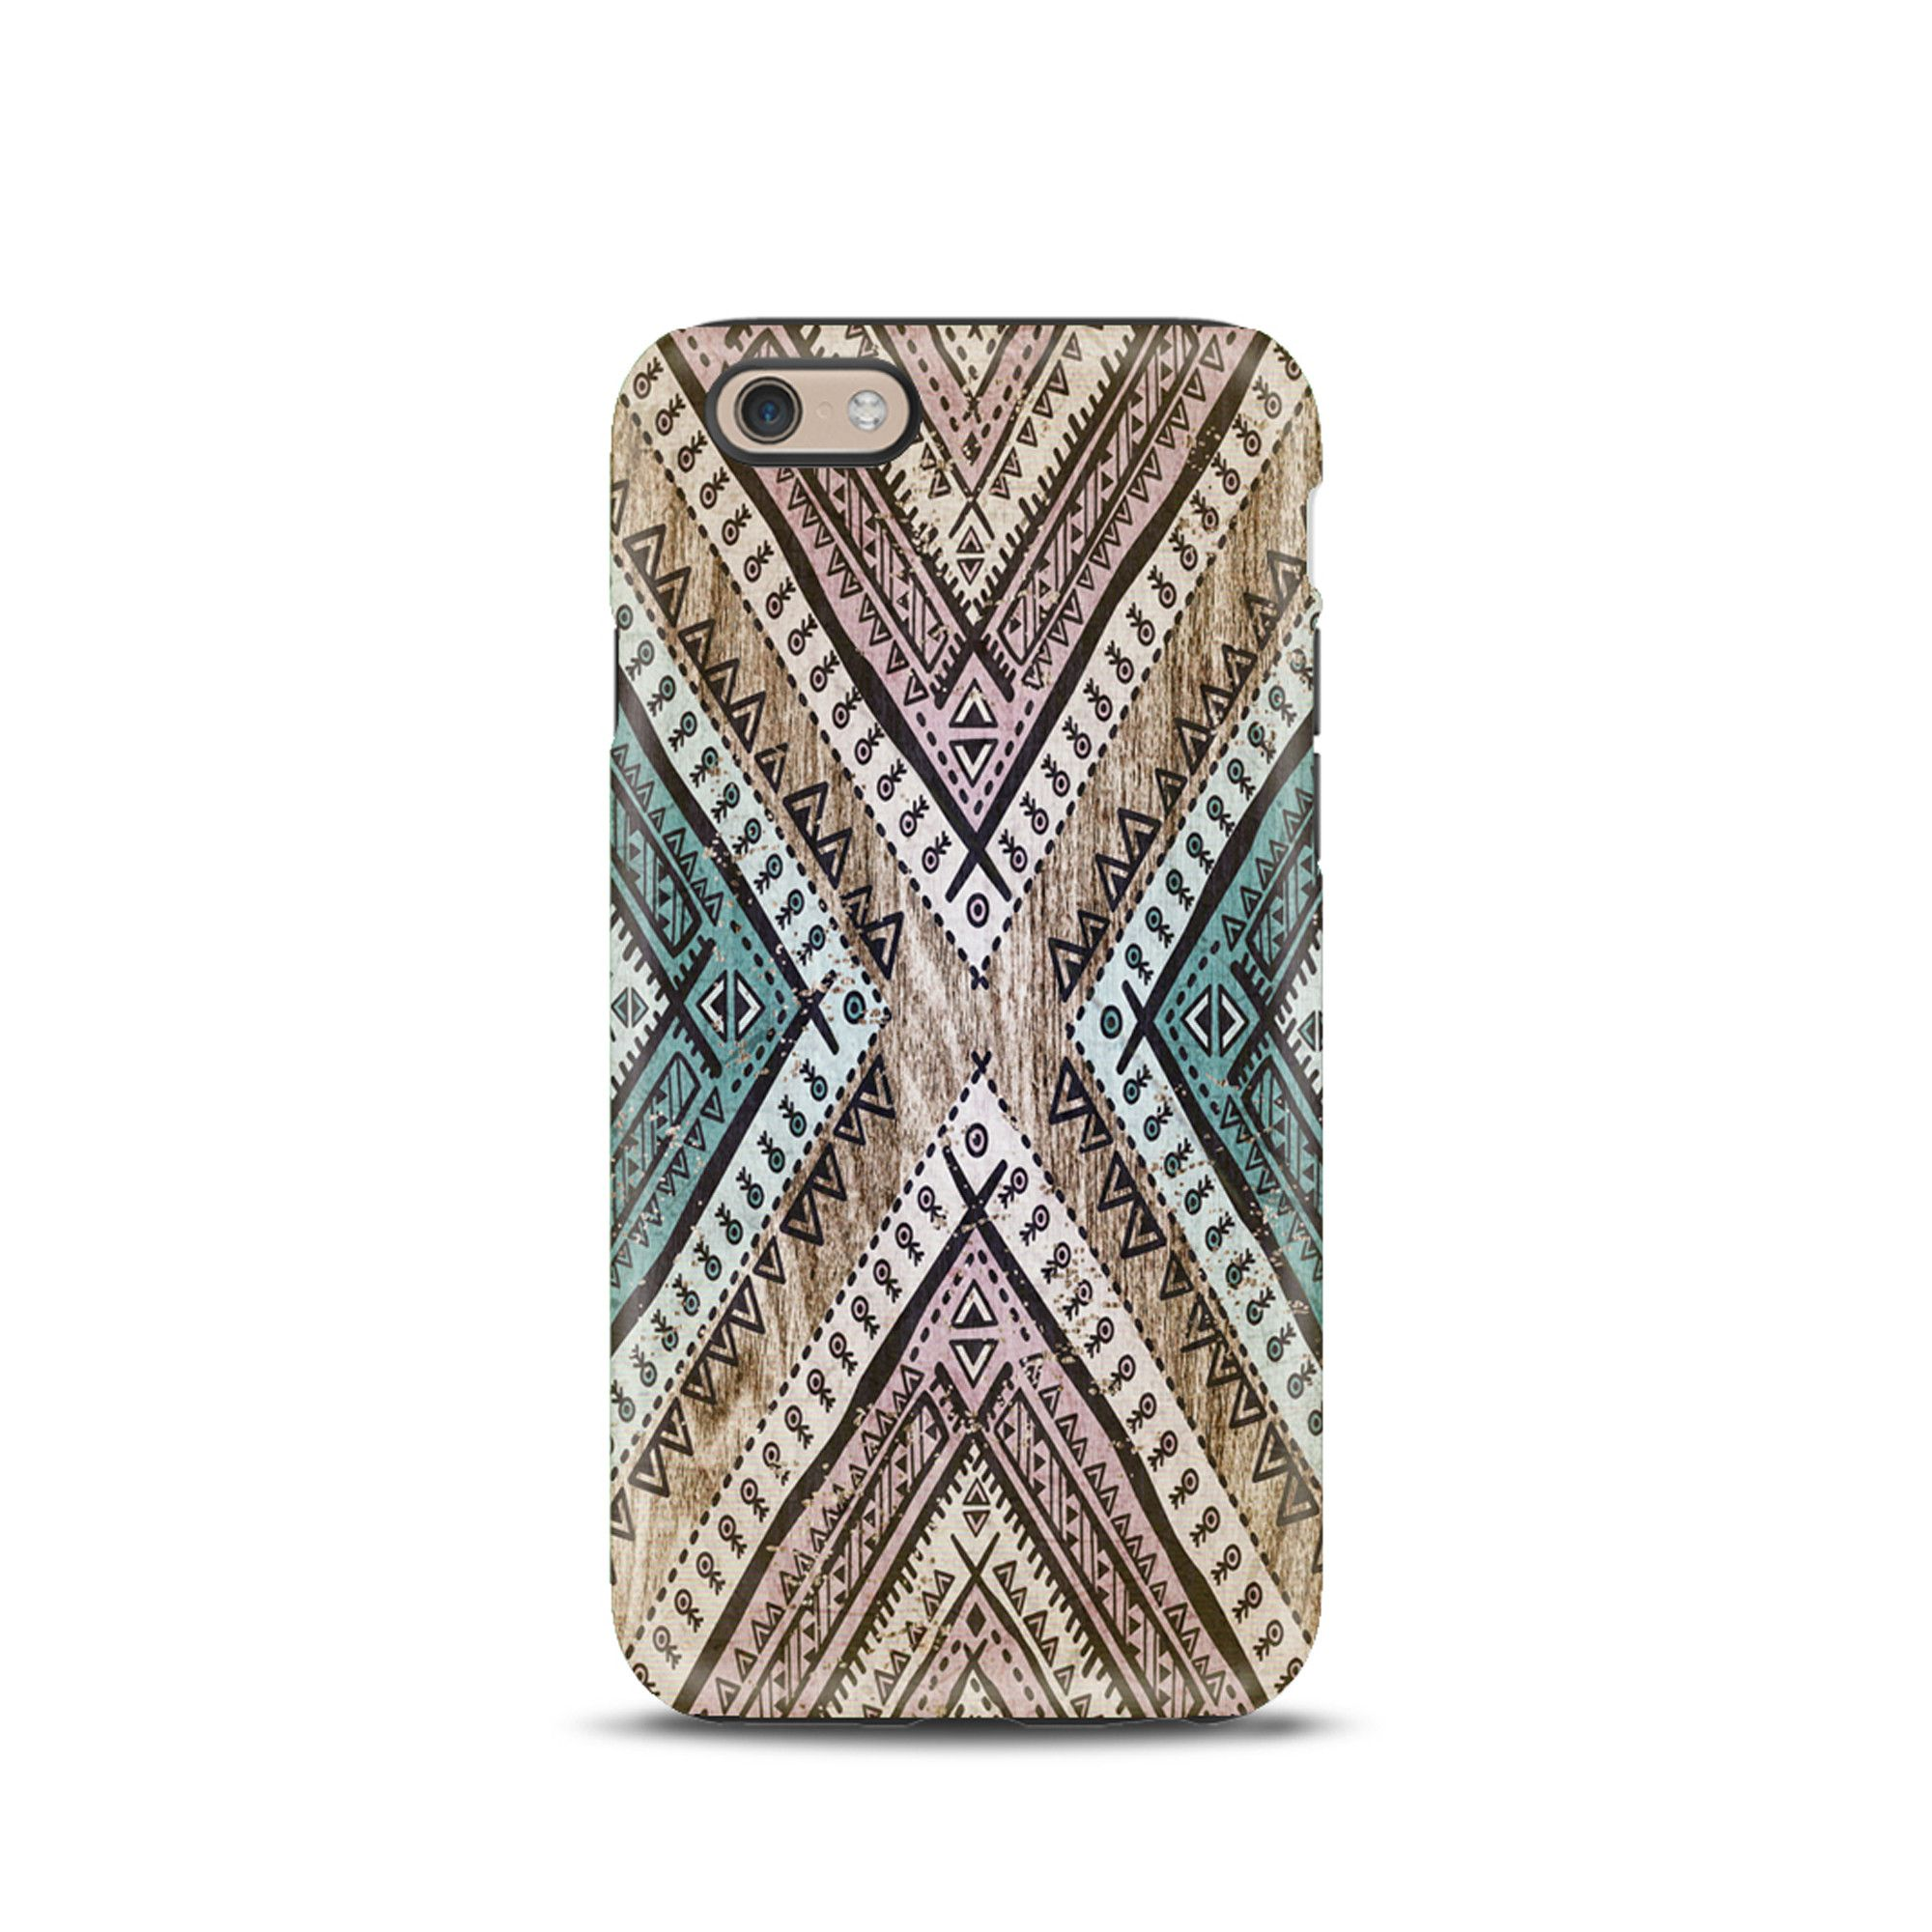 Tribal Triangle iPhone case   www.overcase.net  www.etsy.com/shop/overcaseshop  #iphonecase #iphonecover #handmade #overcase #overcaseshop #etsy #shopping #shop #cutegift #cute #phonecase #accessories #iphone #samsung #fashion #design #etsygifts #art #samsungcase #smartphonecase #mobileaccessories #customcase #customizedphonecase #samsunggalaxy #galaxys8 #samsunggalaxys8